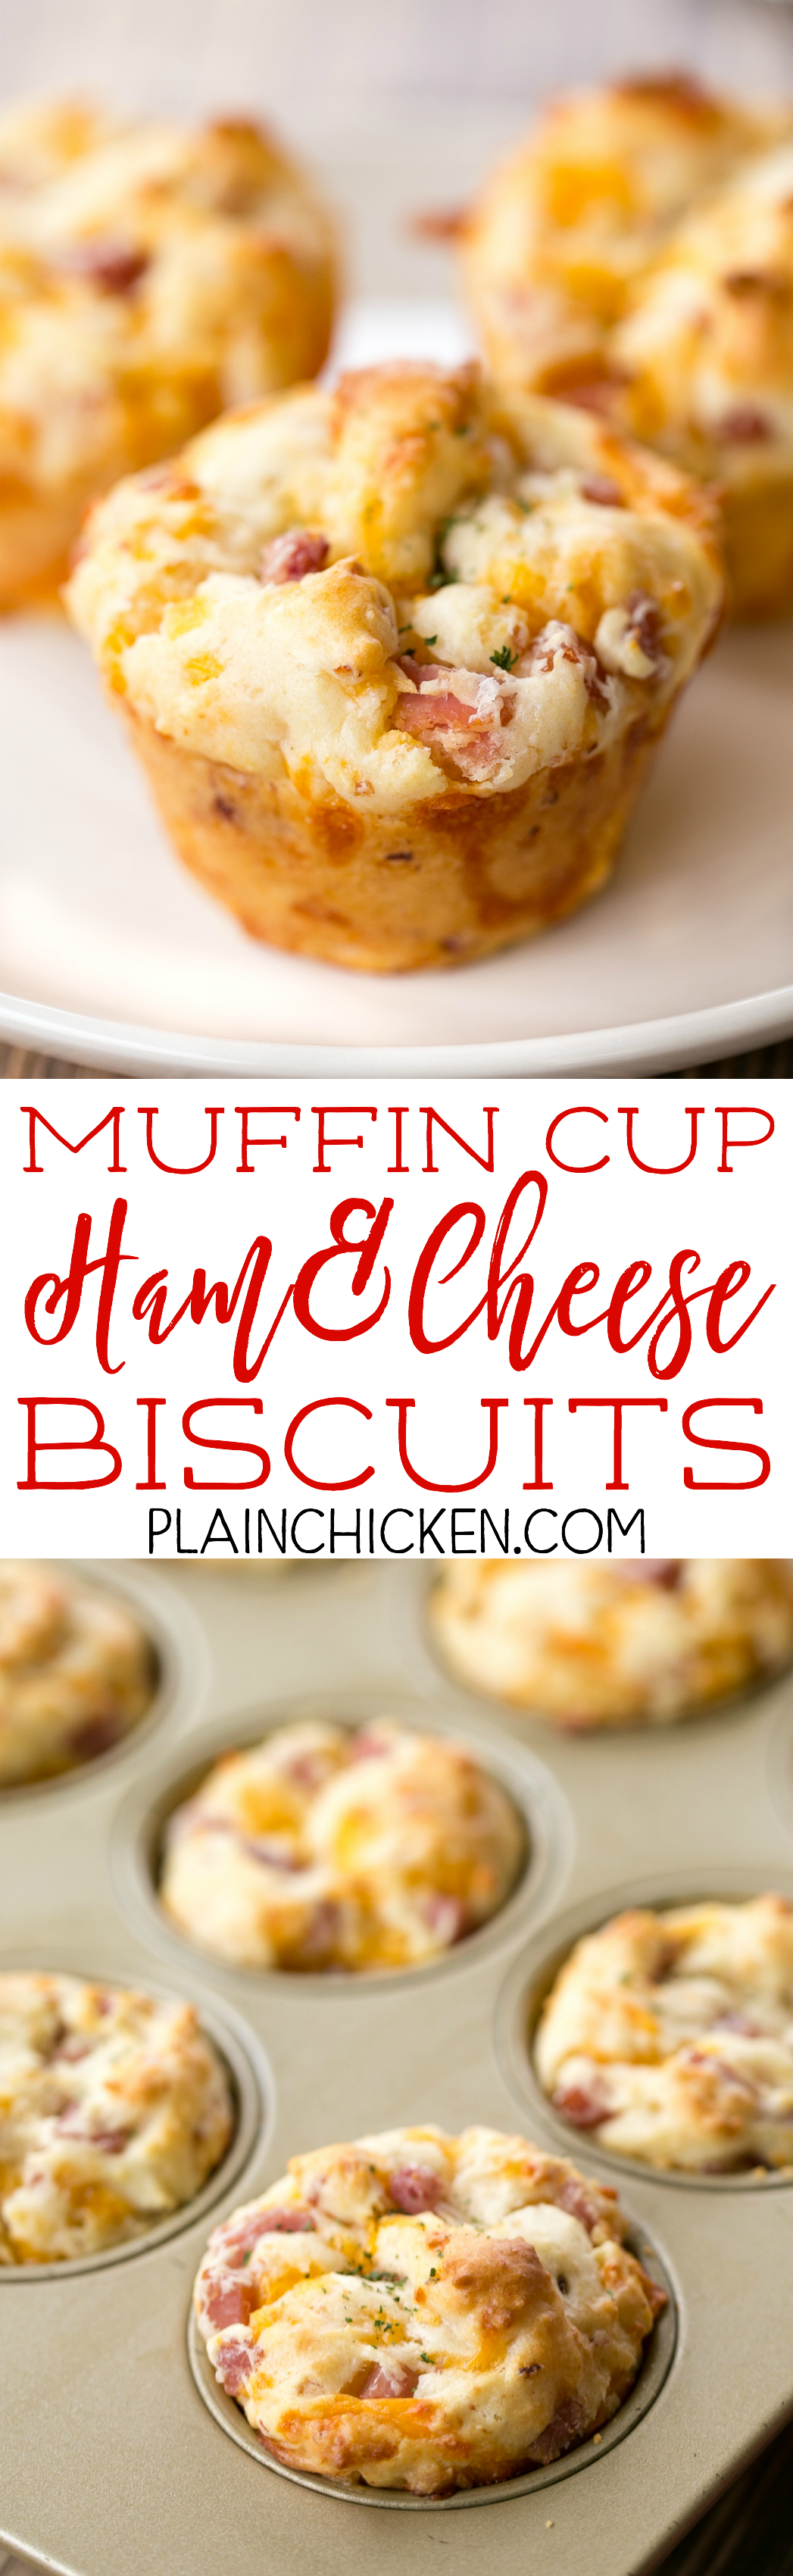 Cup Ham and Cheese Biscuits - SO GOOD! Great for breakfast, lunch or dinner. Make in a mini muffin pan for parties. There are never any left!! Flour, baking powder, salt, mayonnaise, ham and cheese. Ready in under 15 minutes!